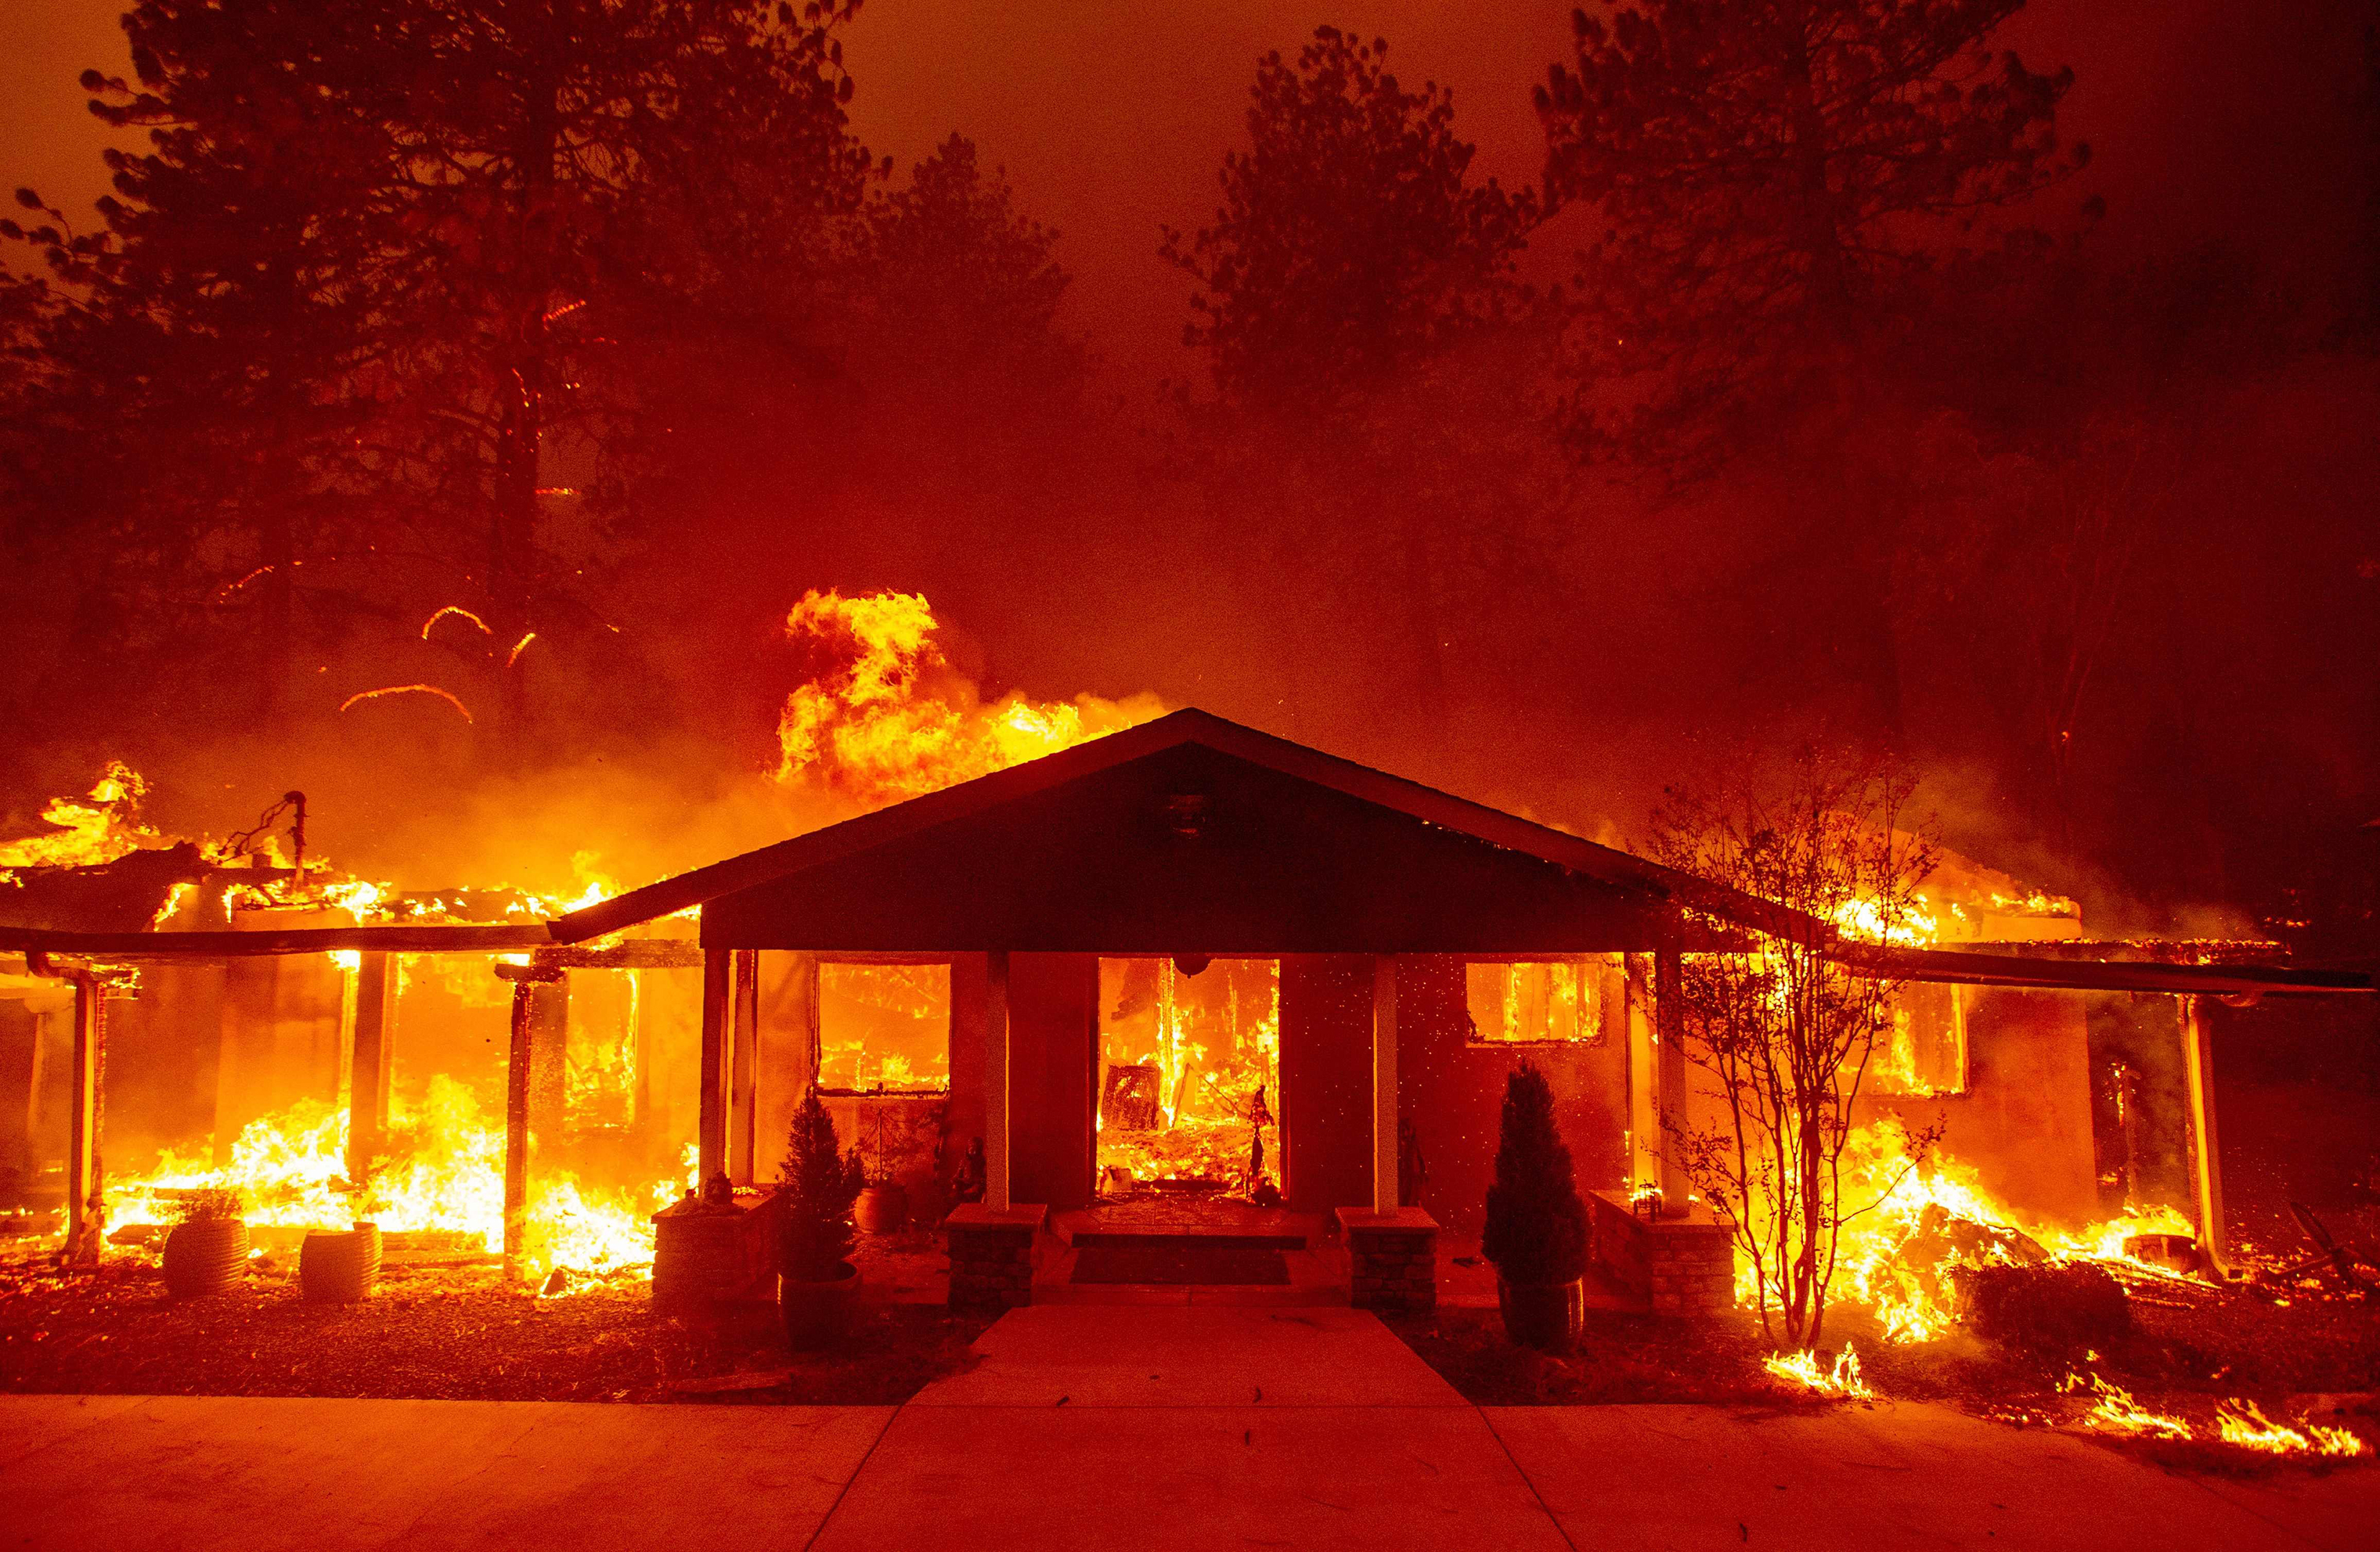 A home burns during the Camp fire in Paradise, Calif. on Nov. 8.